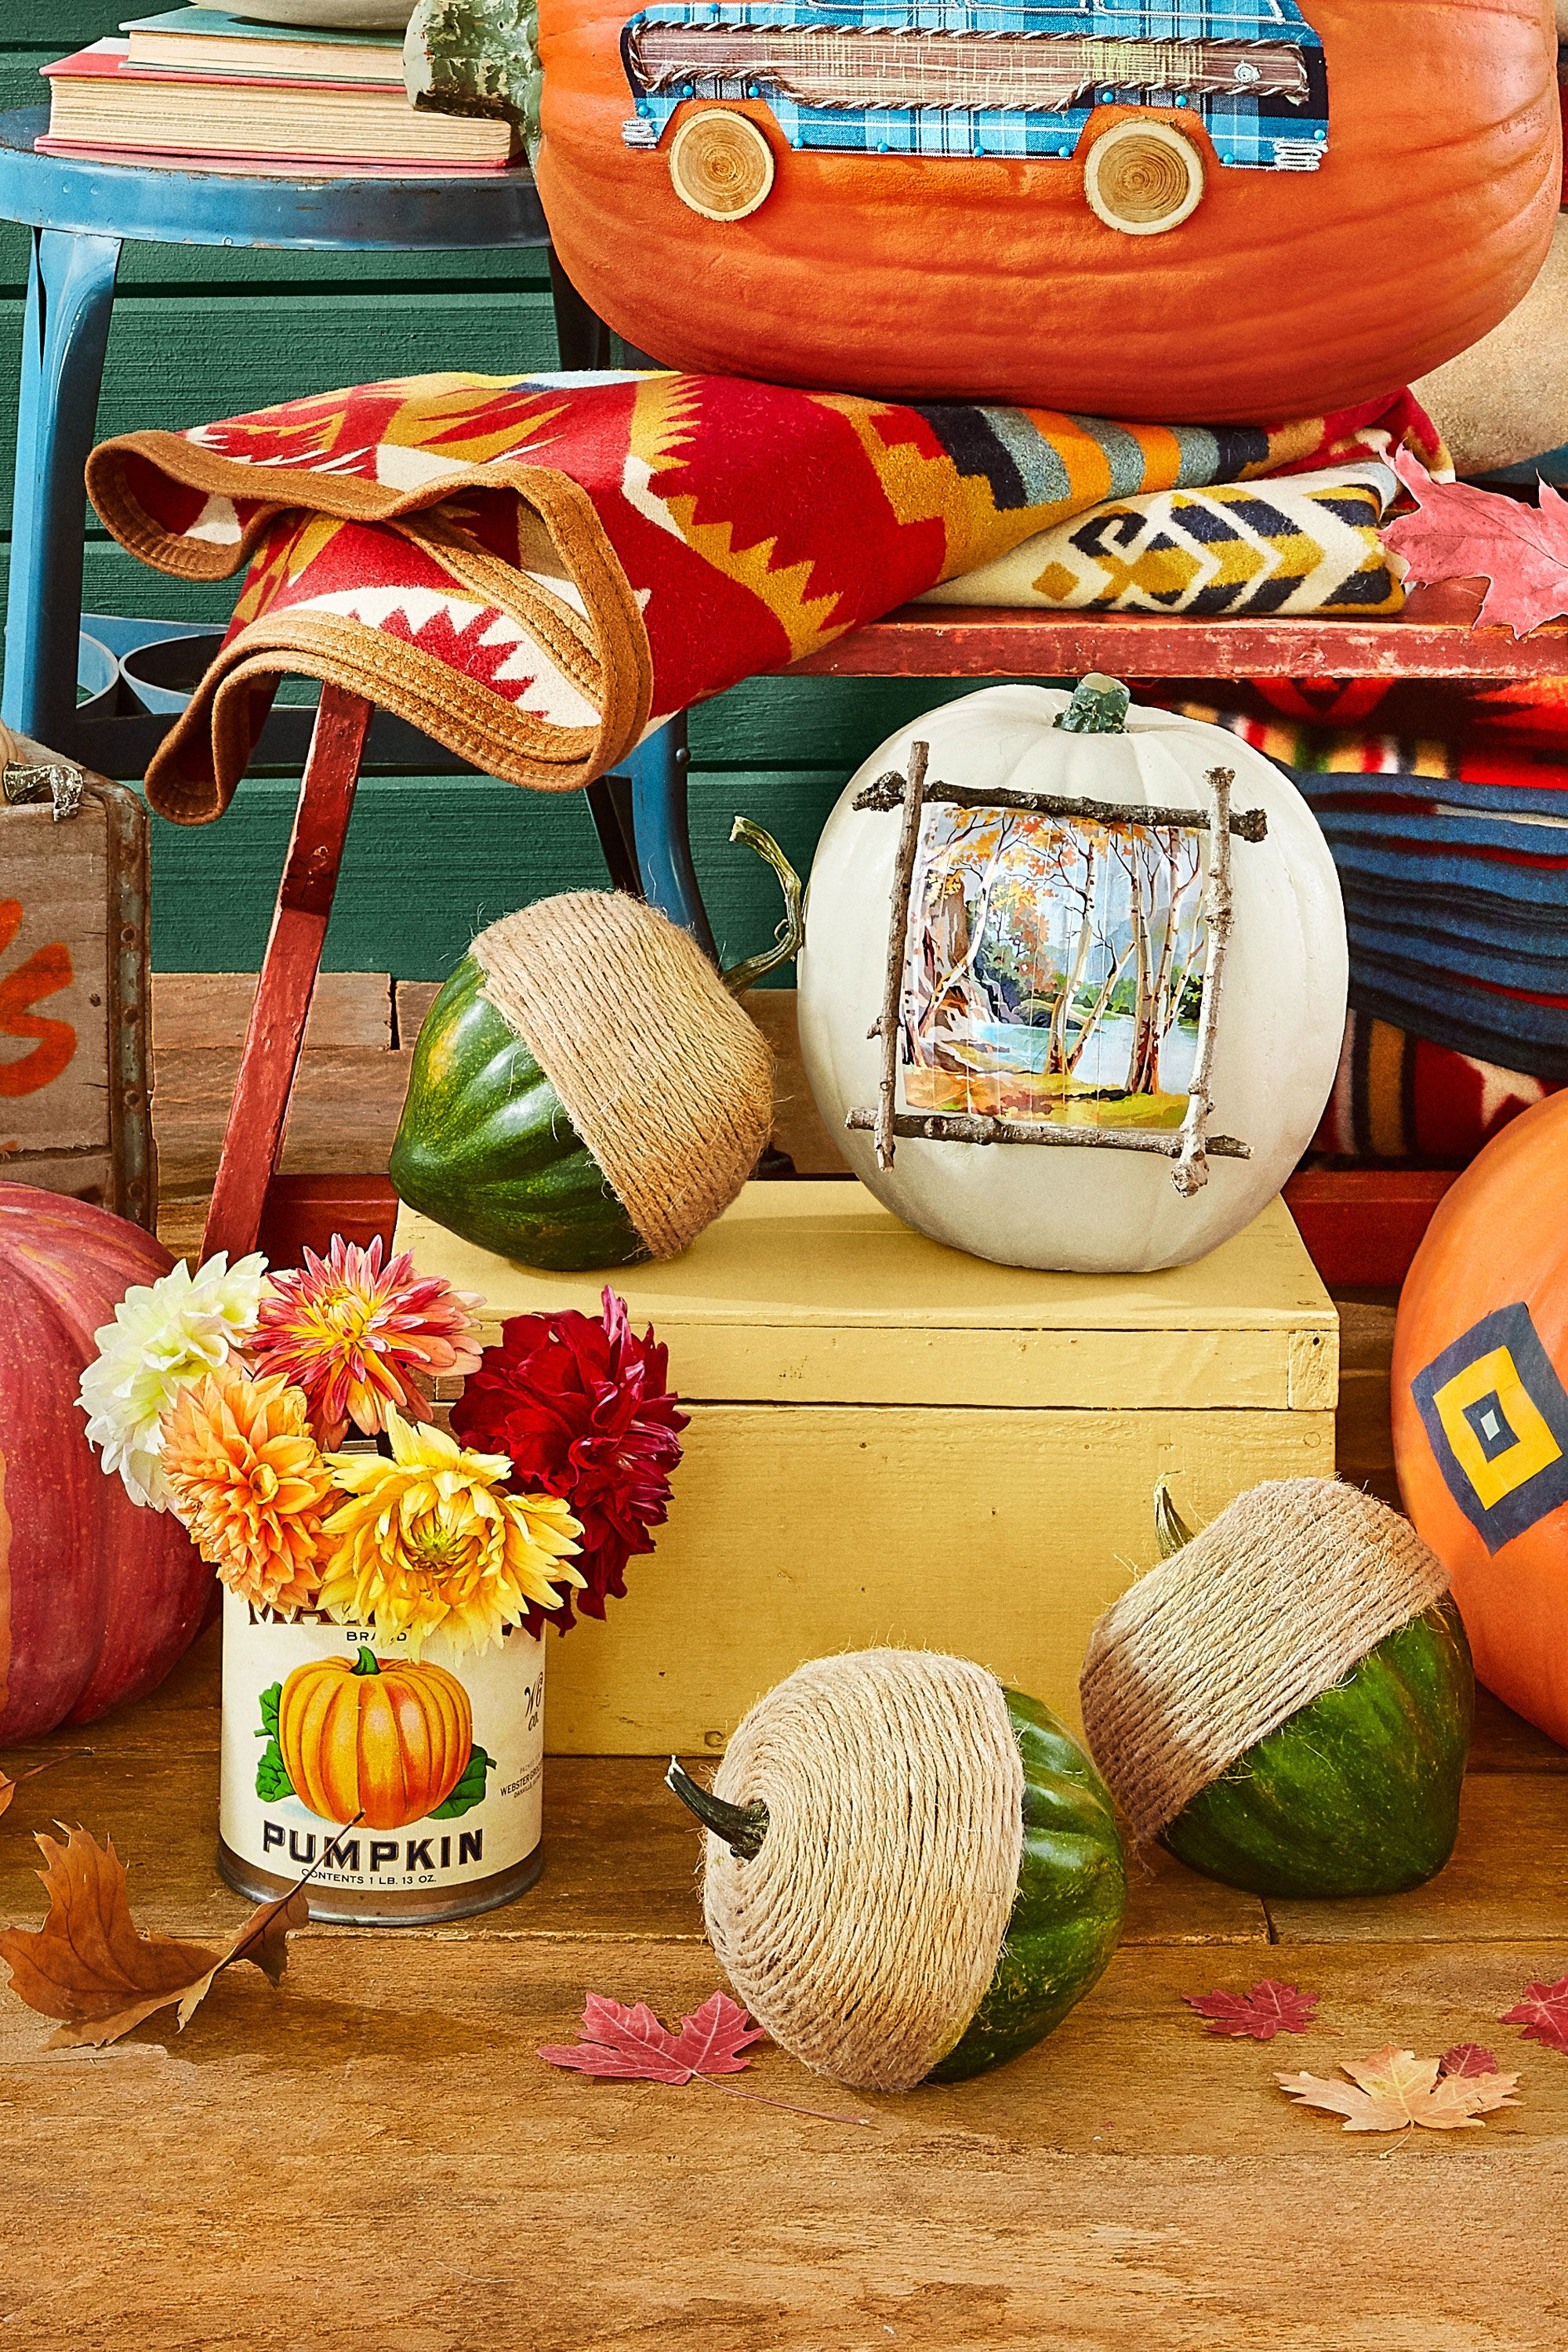 57 Easy Painted Pumpkins Ideas - No Carve Halloween Pumpkin Painting &  Decorating Ideas